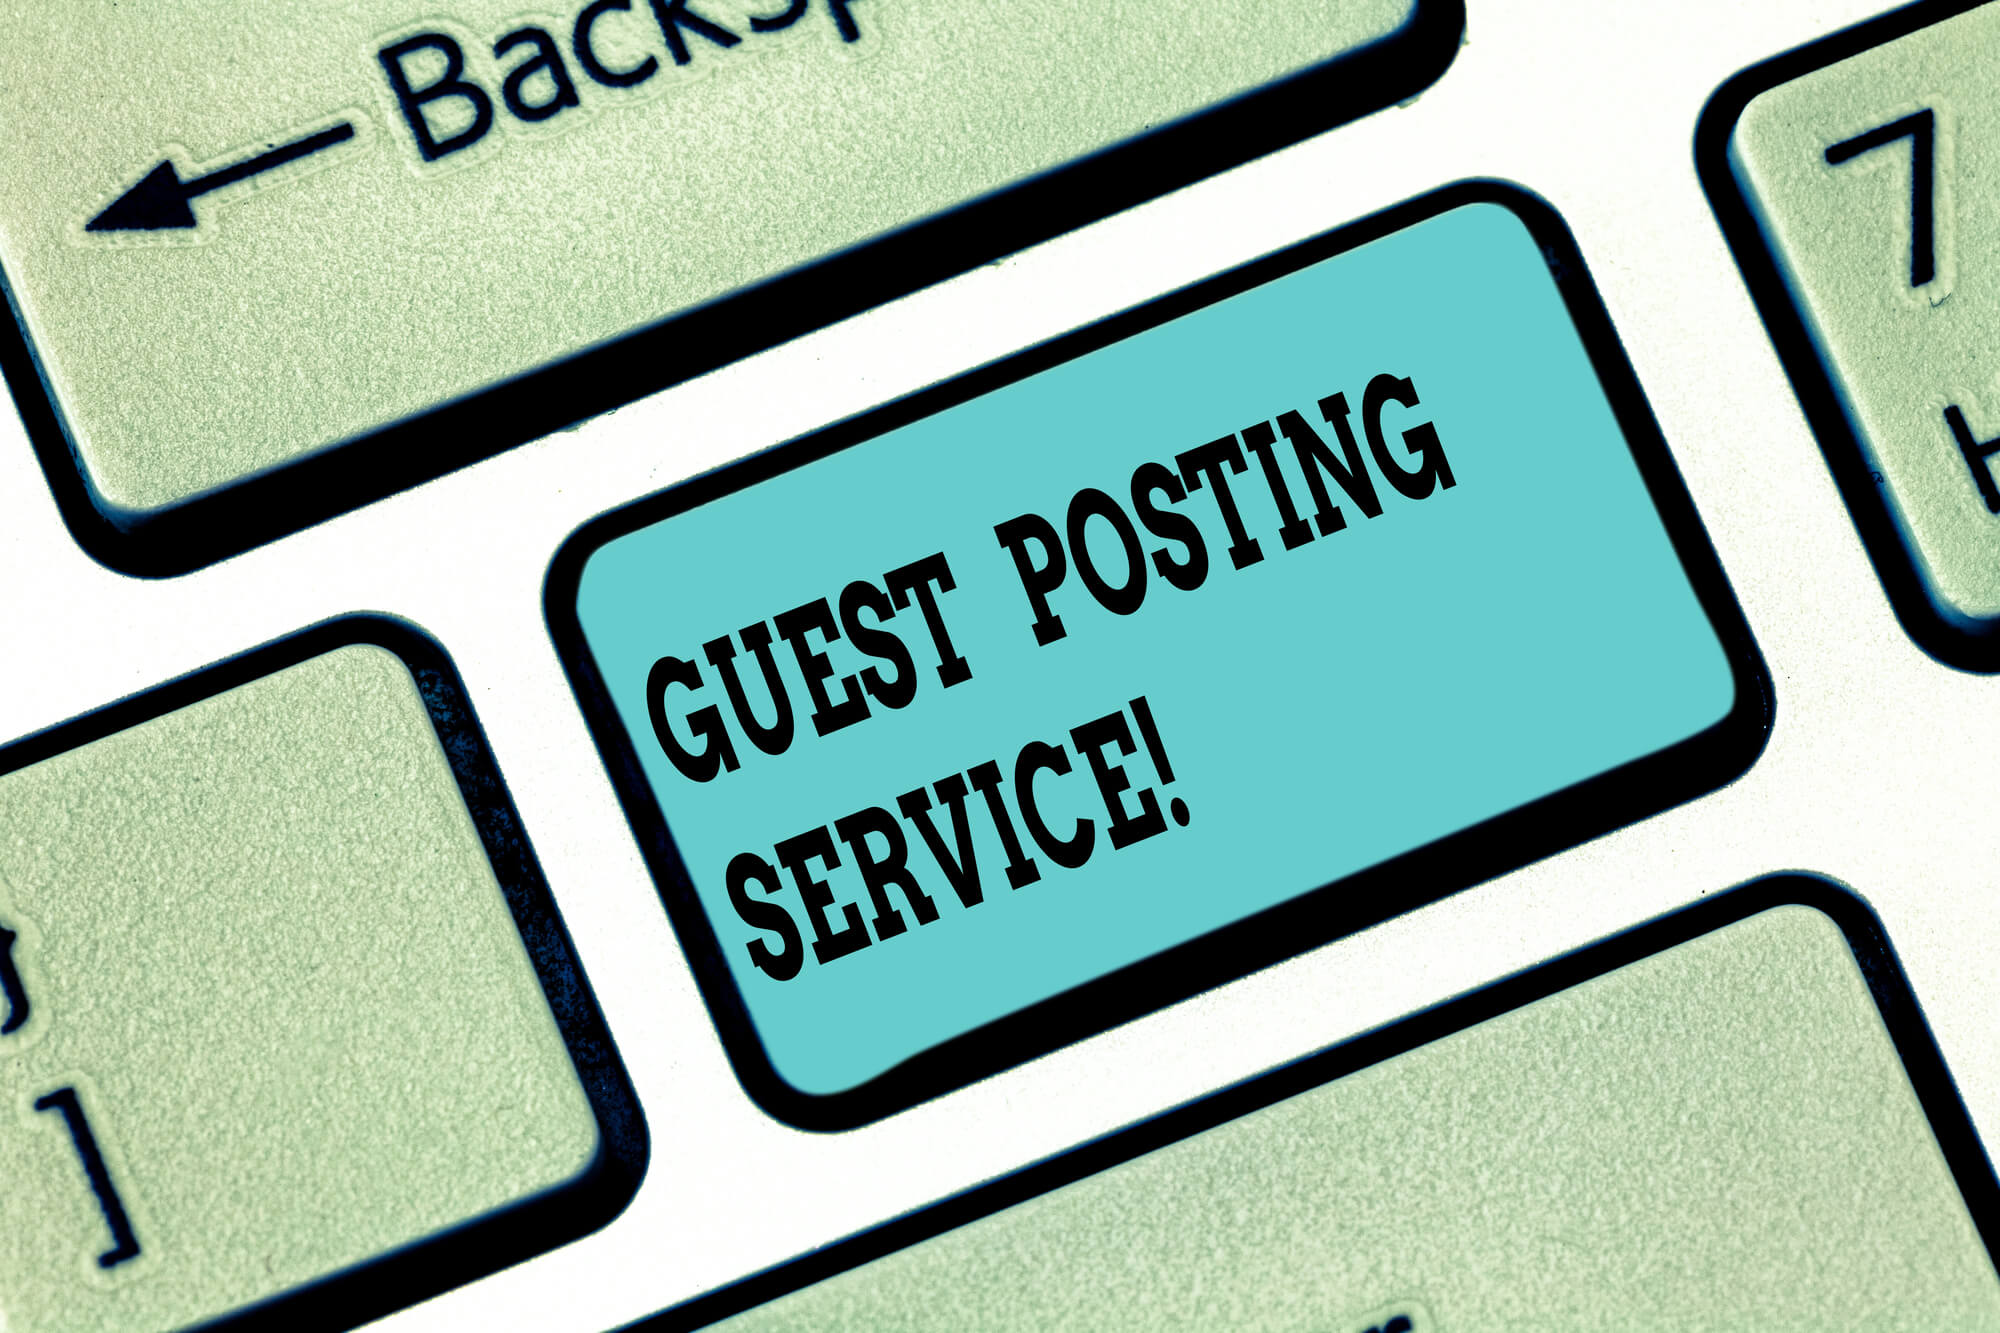 new orleans guest posting services - Big Easy SEO